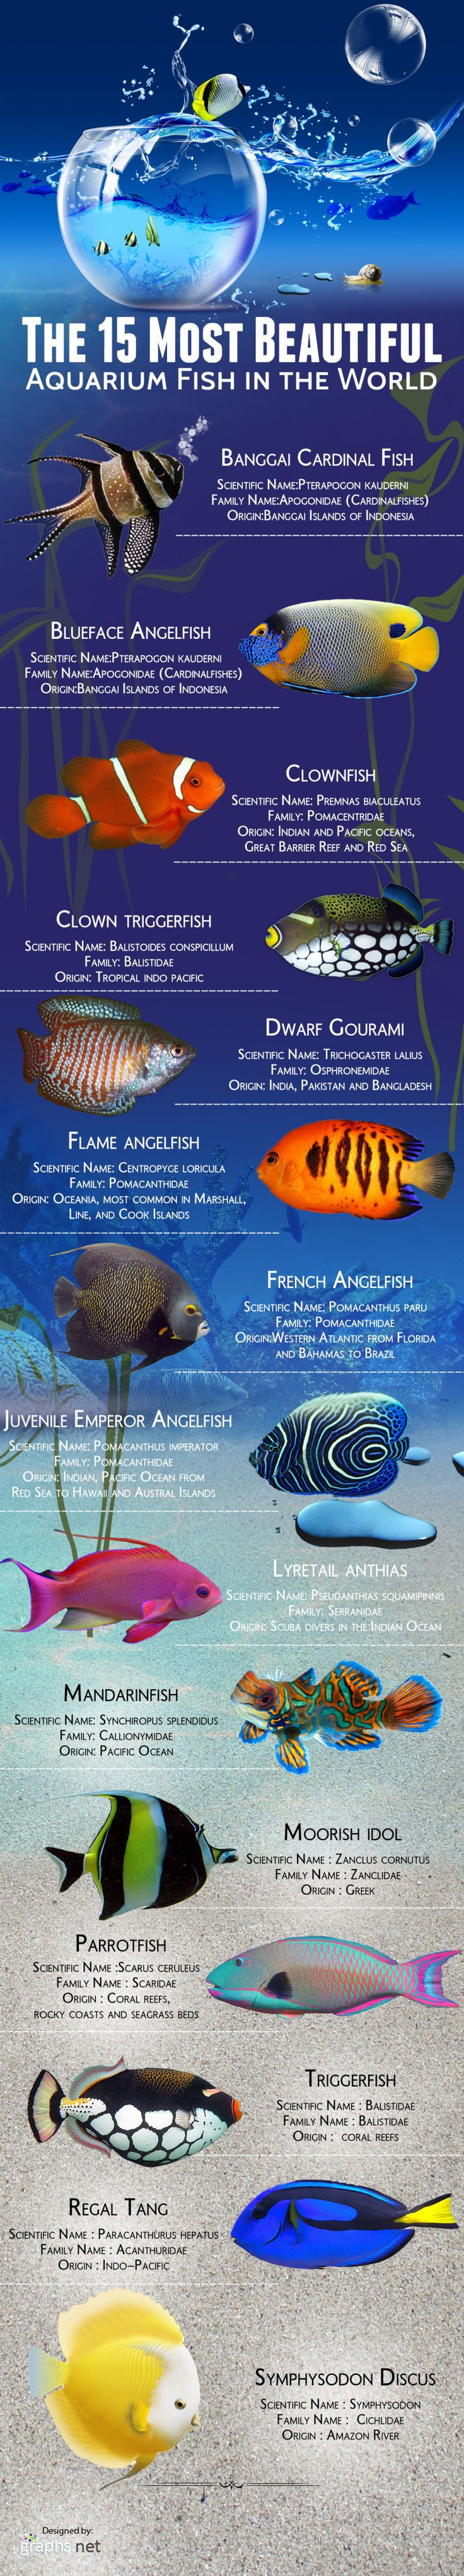 Fish aquarium in janakpuri - The 15 Most Beautiful Aquarium Fish In The World Infographic Salt Water Tanks